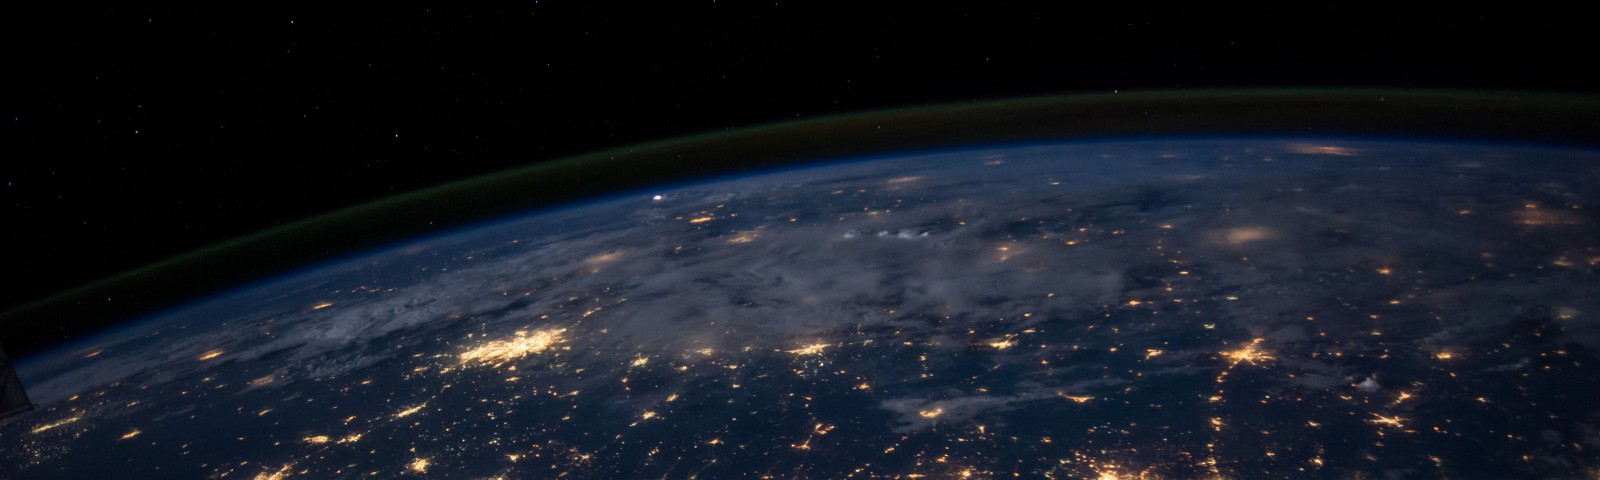 a picture of the Earth from space at night showing the glowing lights of cities